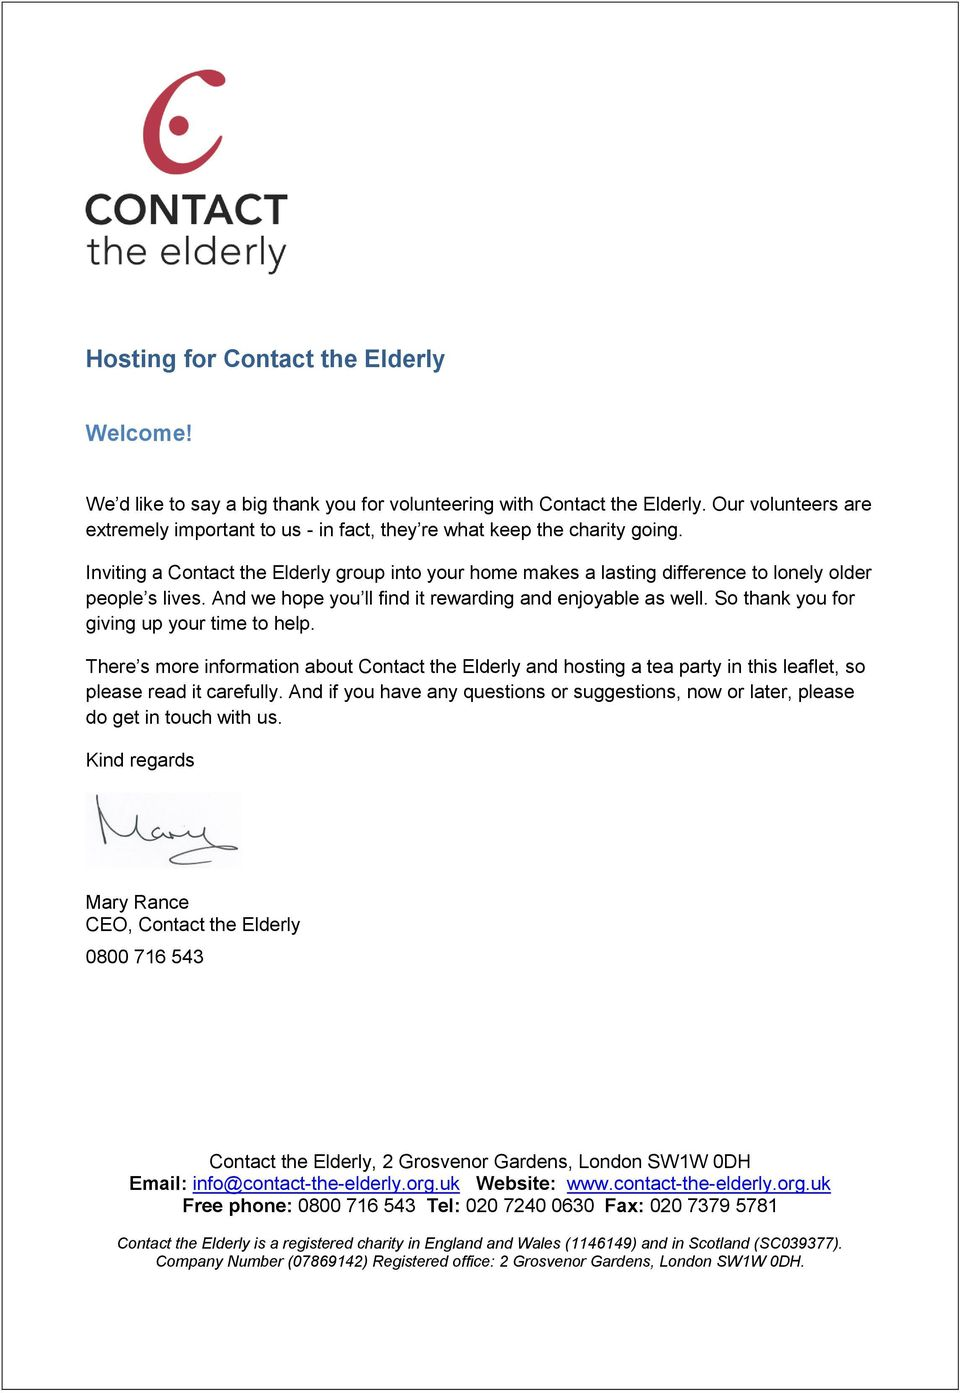 Inviting a Contact the Elderly group into your home makes a lasting difference to lonely older people s lives. And we hope you ll find it rewarding and enjoyable as well.